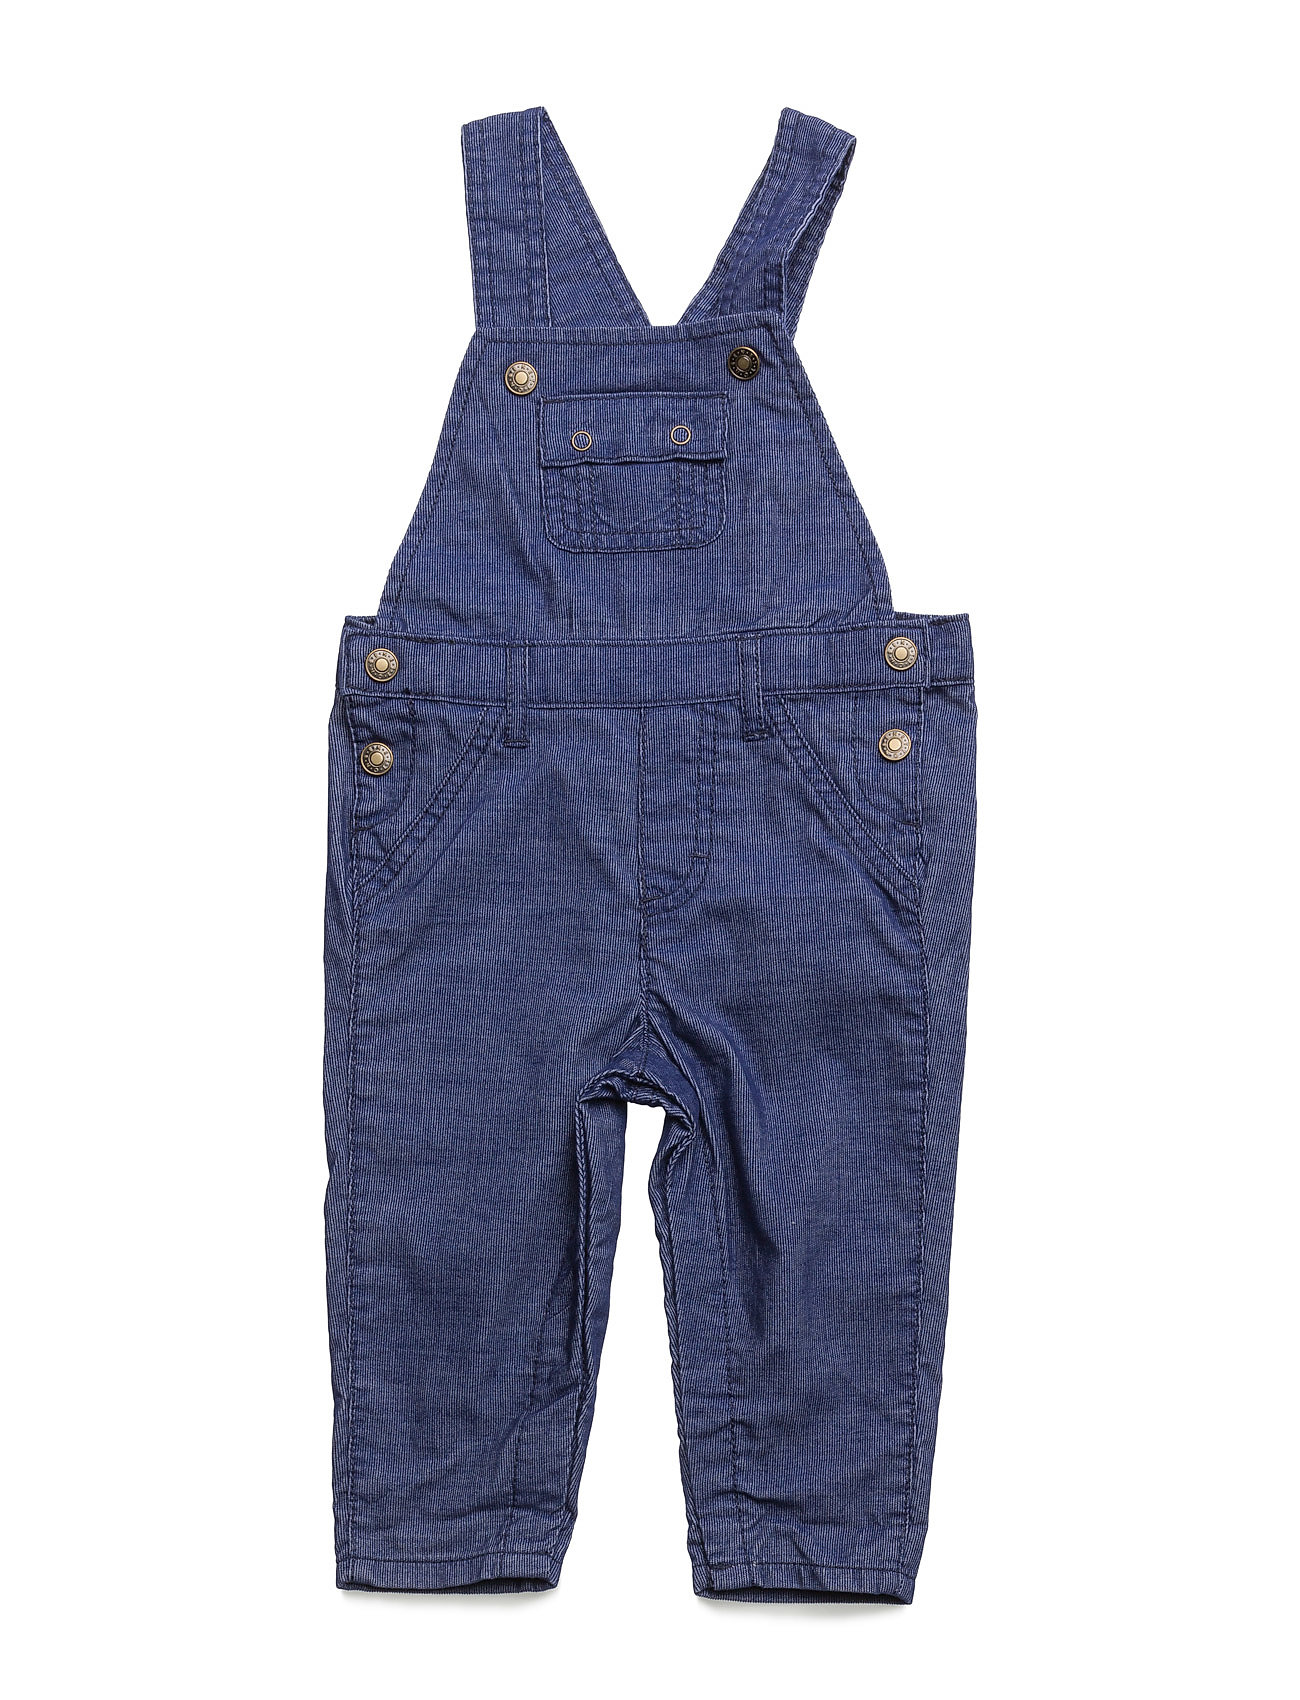 united colors of benetton Dungaree fra boozt.com dk